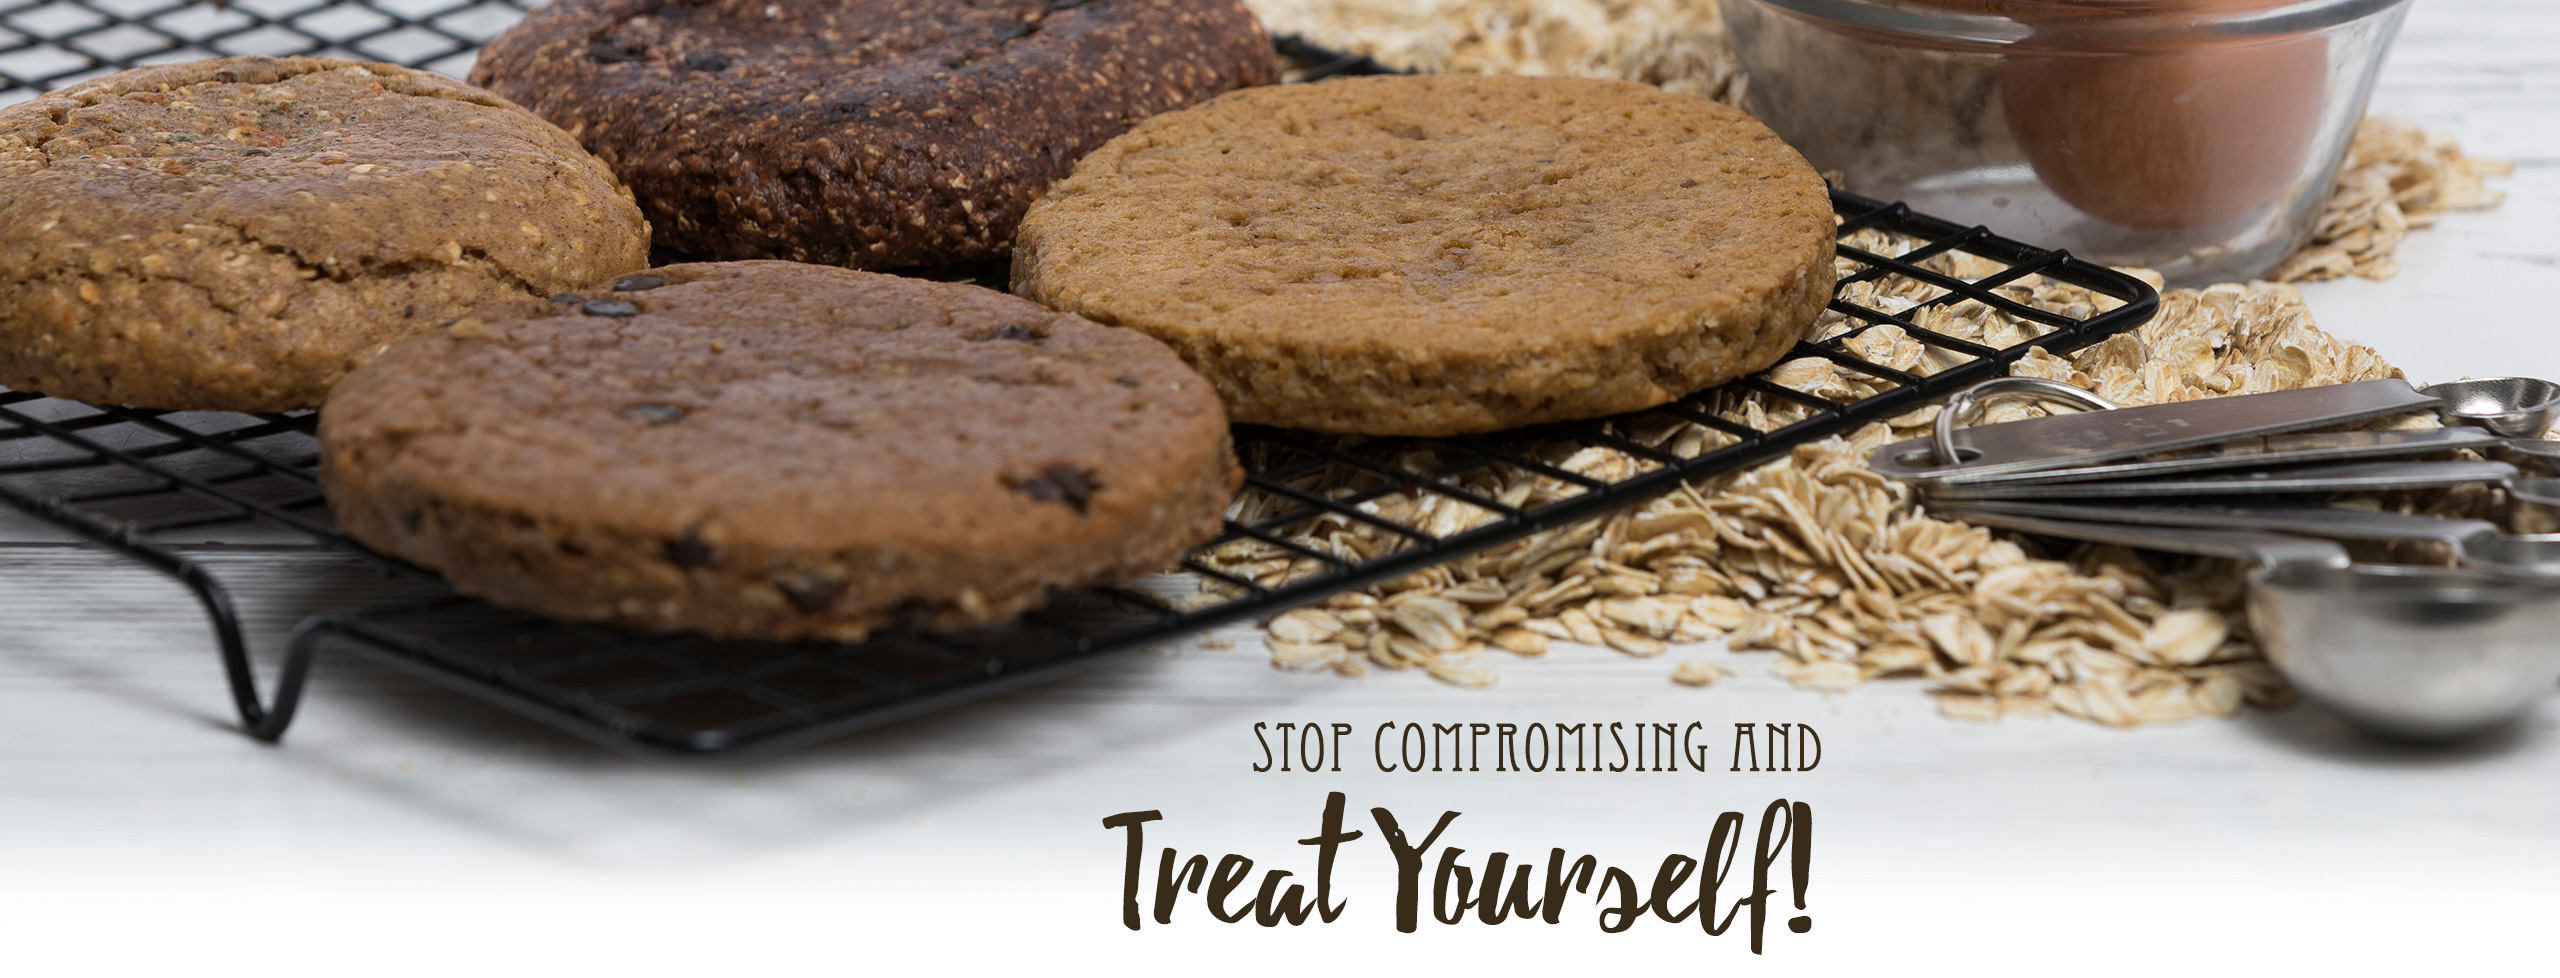 Stop Compromising and Treat Yourself to Mama T's Protein Cookies